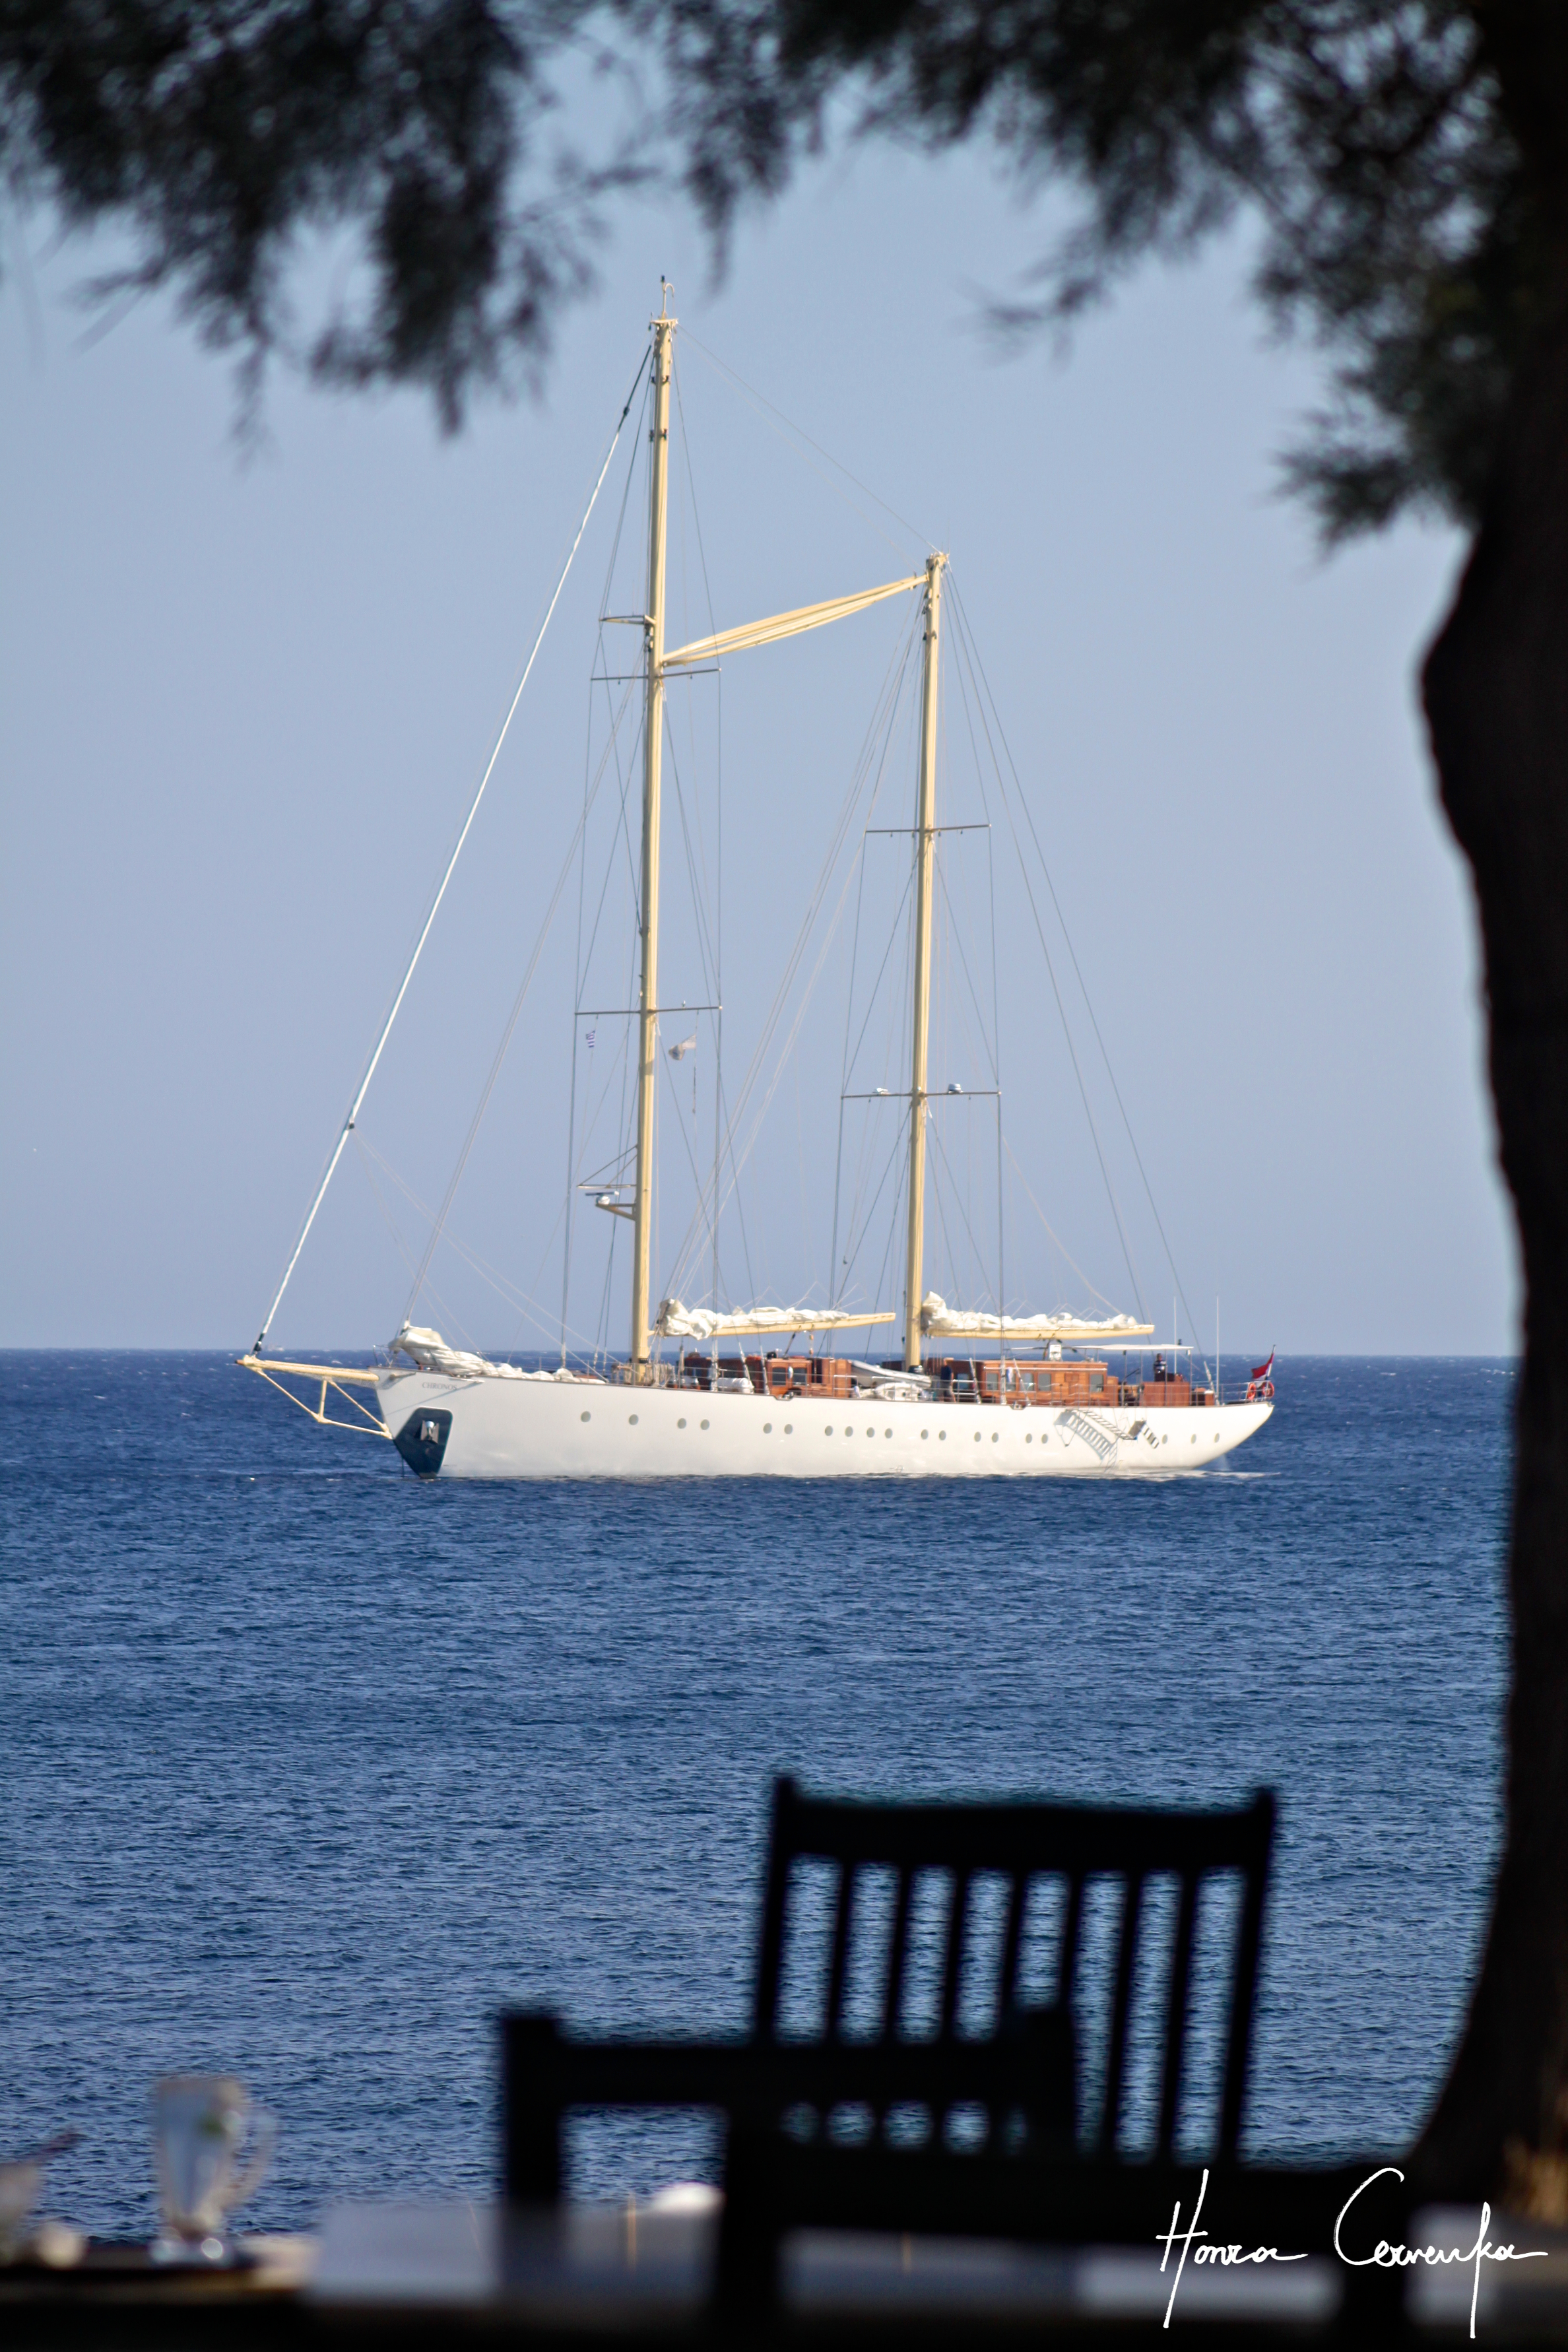 And a bonus after we left the museum--a sailboat (sadly not ours) nicely framed (I think) by the tree and table.